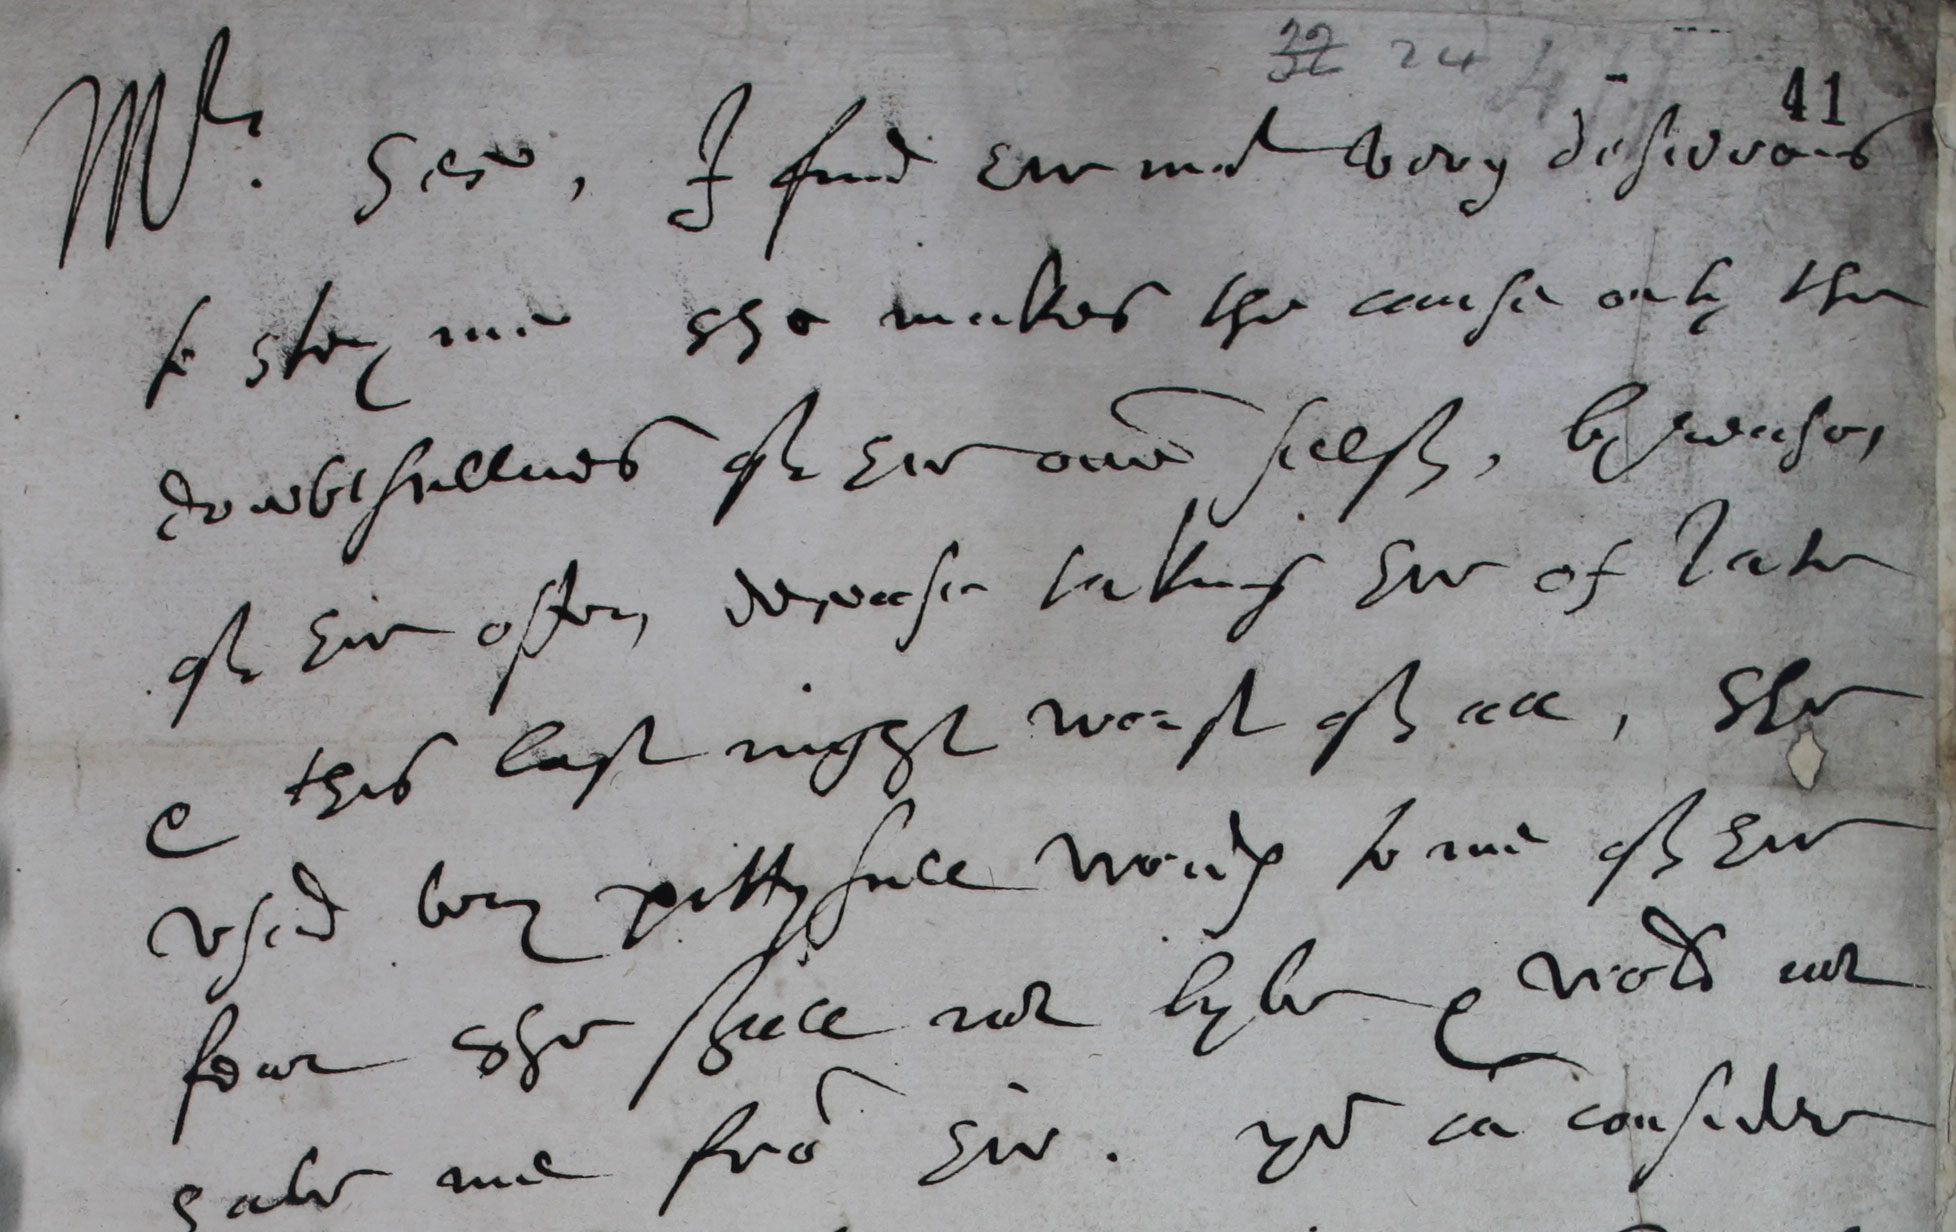 Robert Dudley, Earl of Leicester, to Sir Francis Walsingham, 28 September 1585 (SP 12/182 f.41)